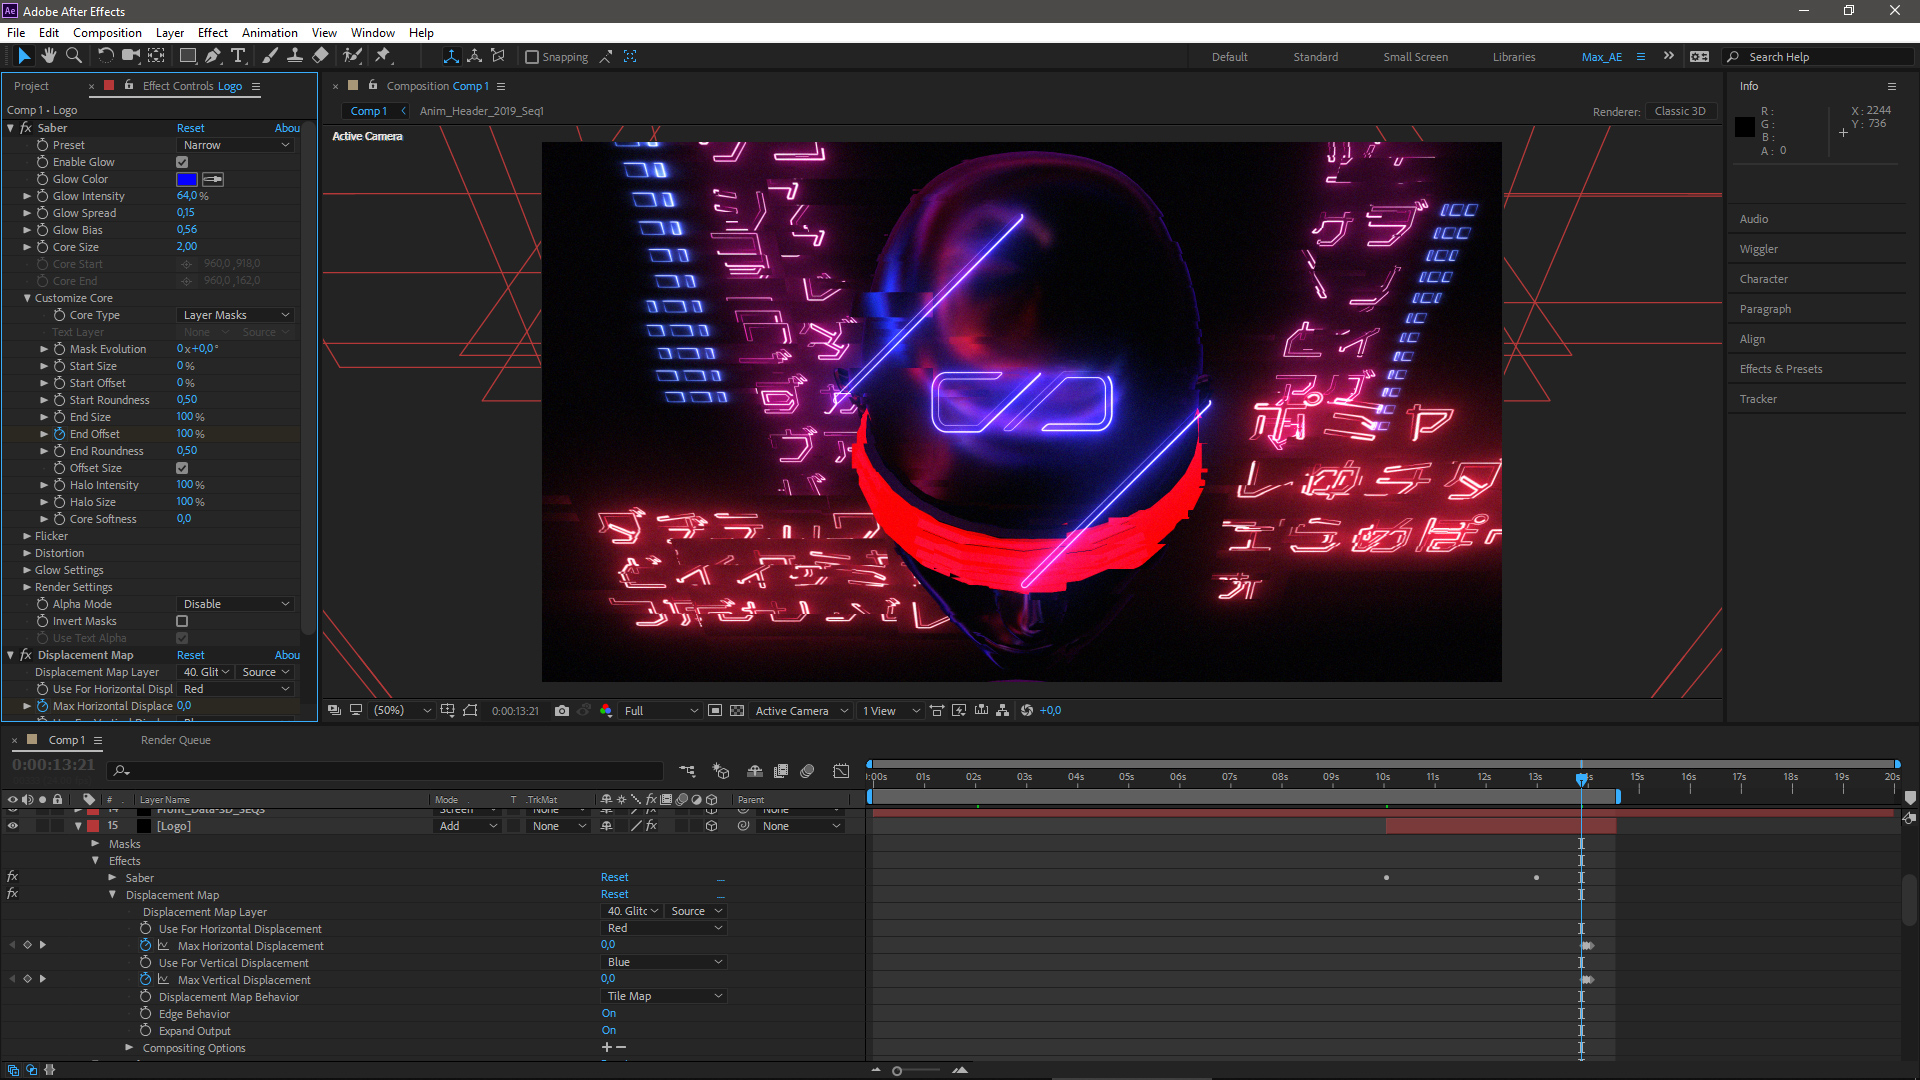 After effects Displacement map glitch